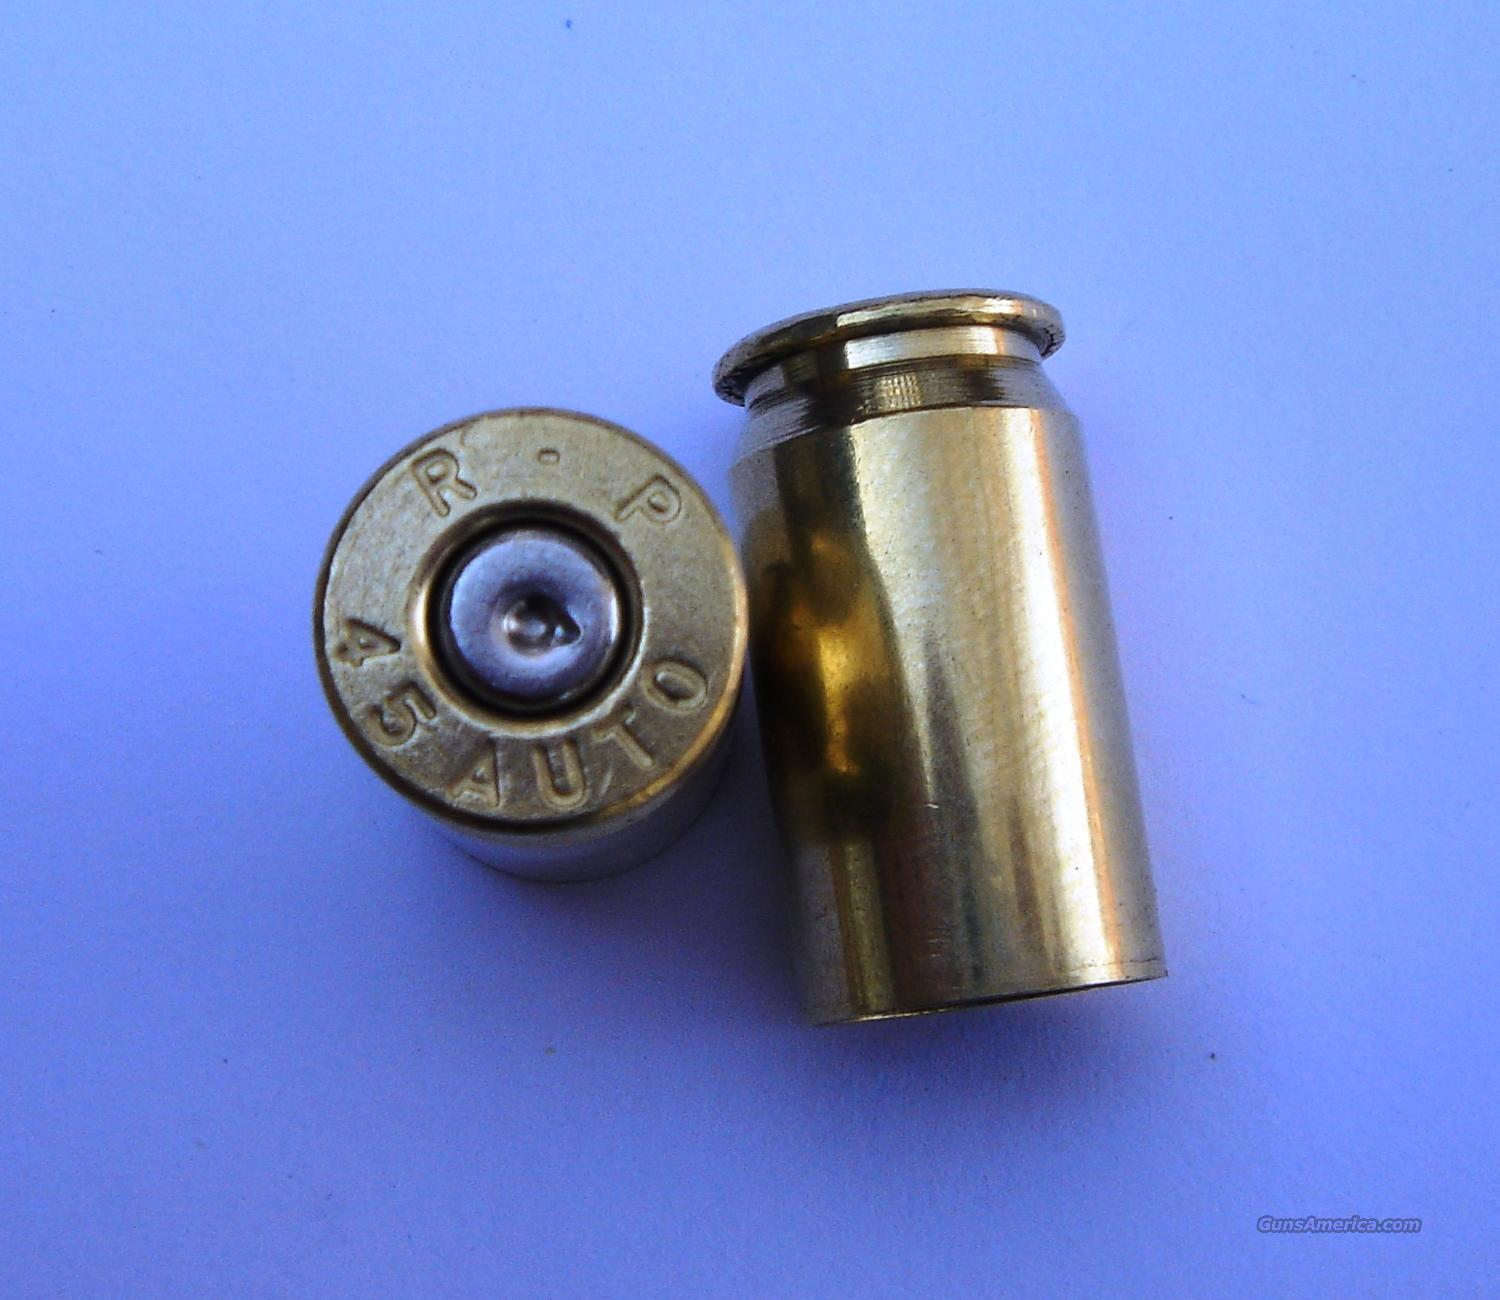 .45 ACP Once-Fired Brass - 1500 Pieces - Cleaned and Polished  Non-Guns > Reloading > Components > Brass